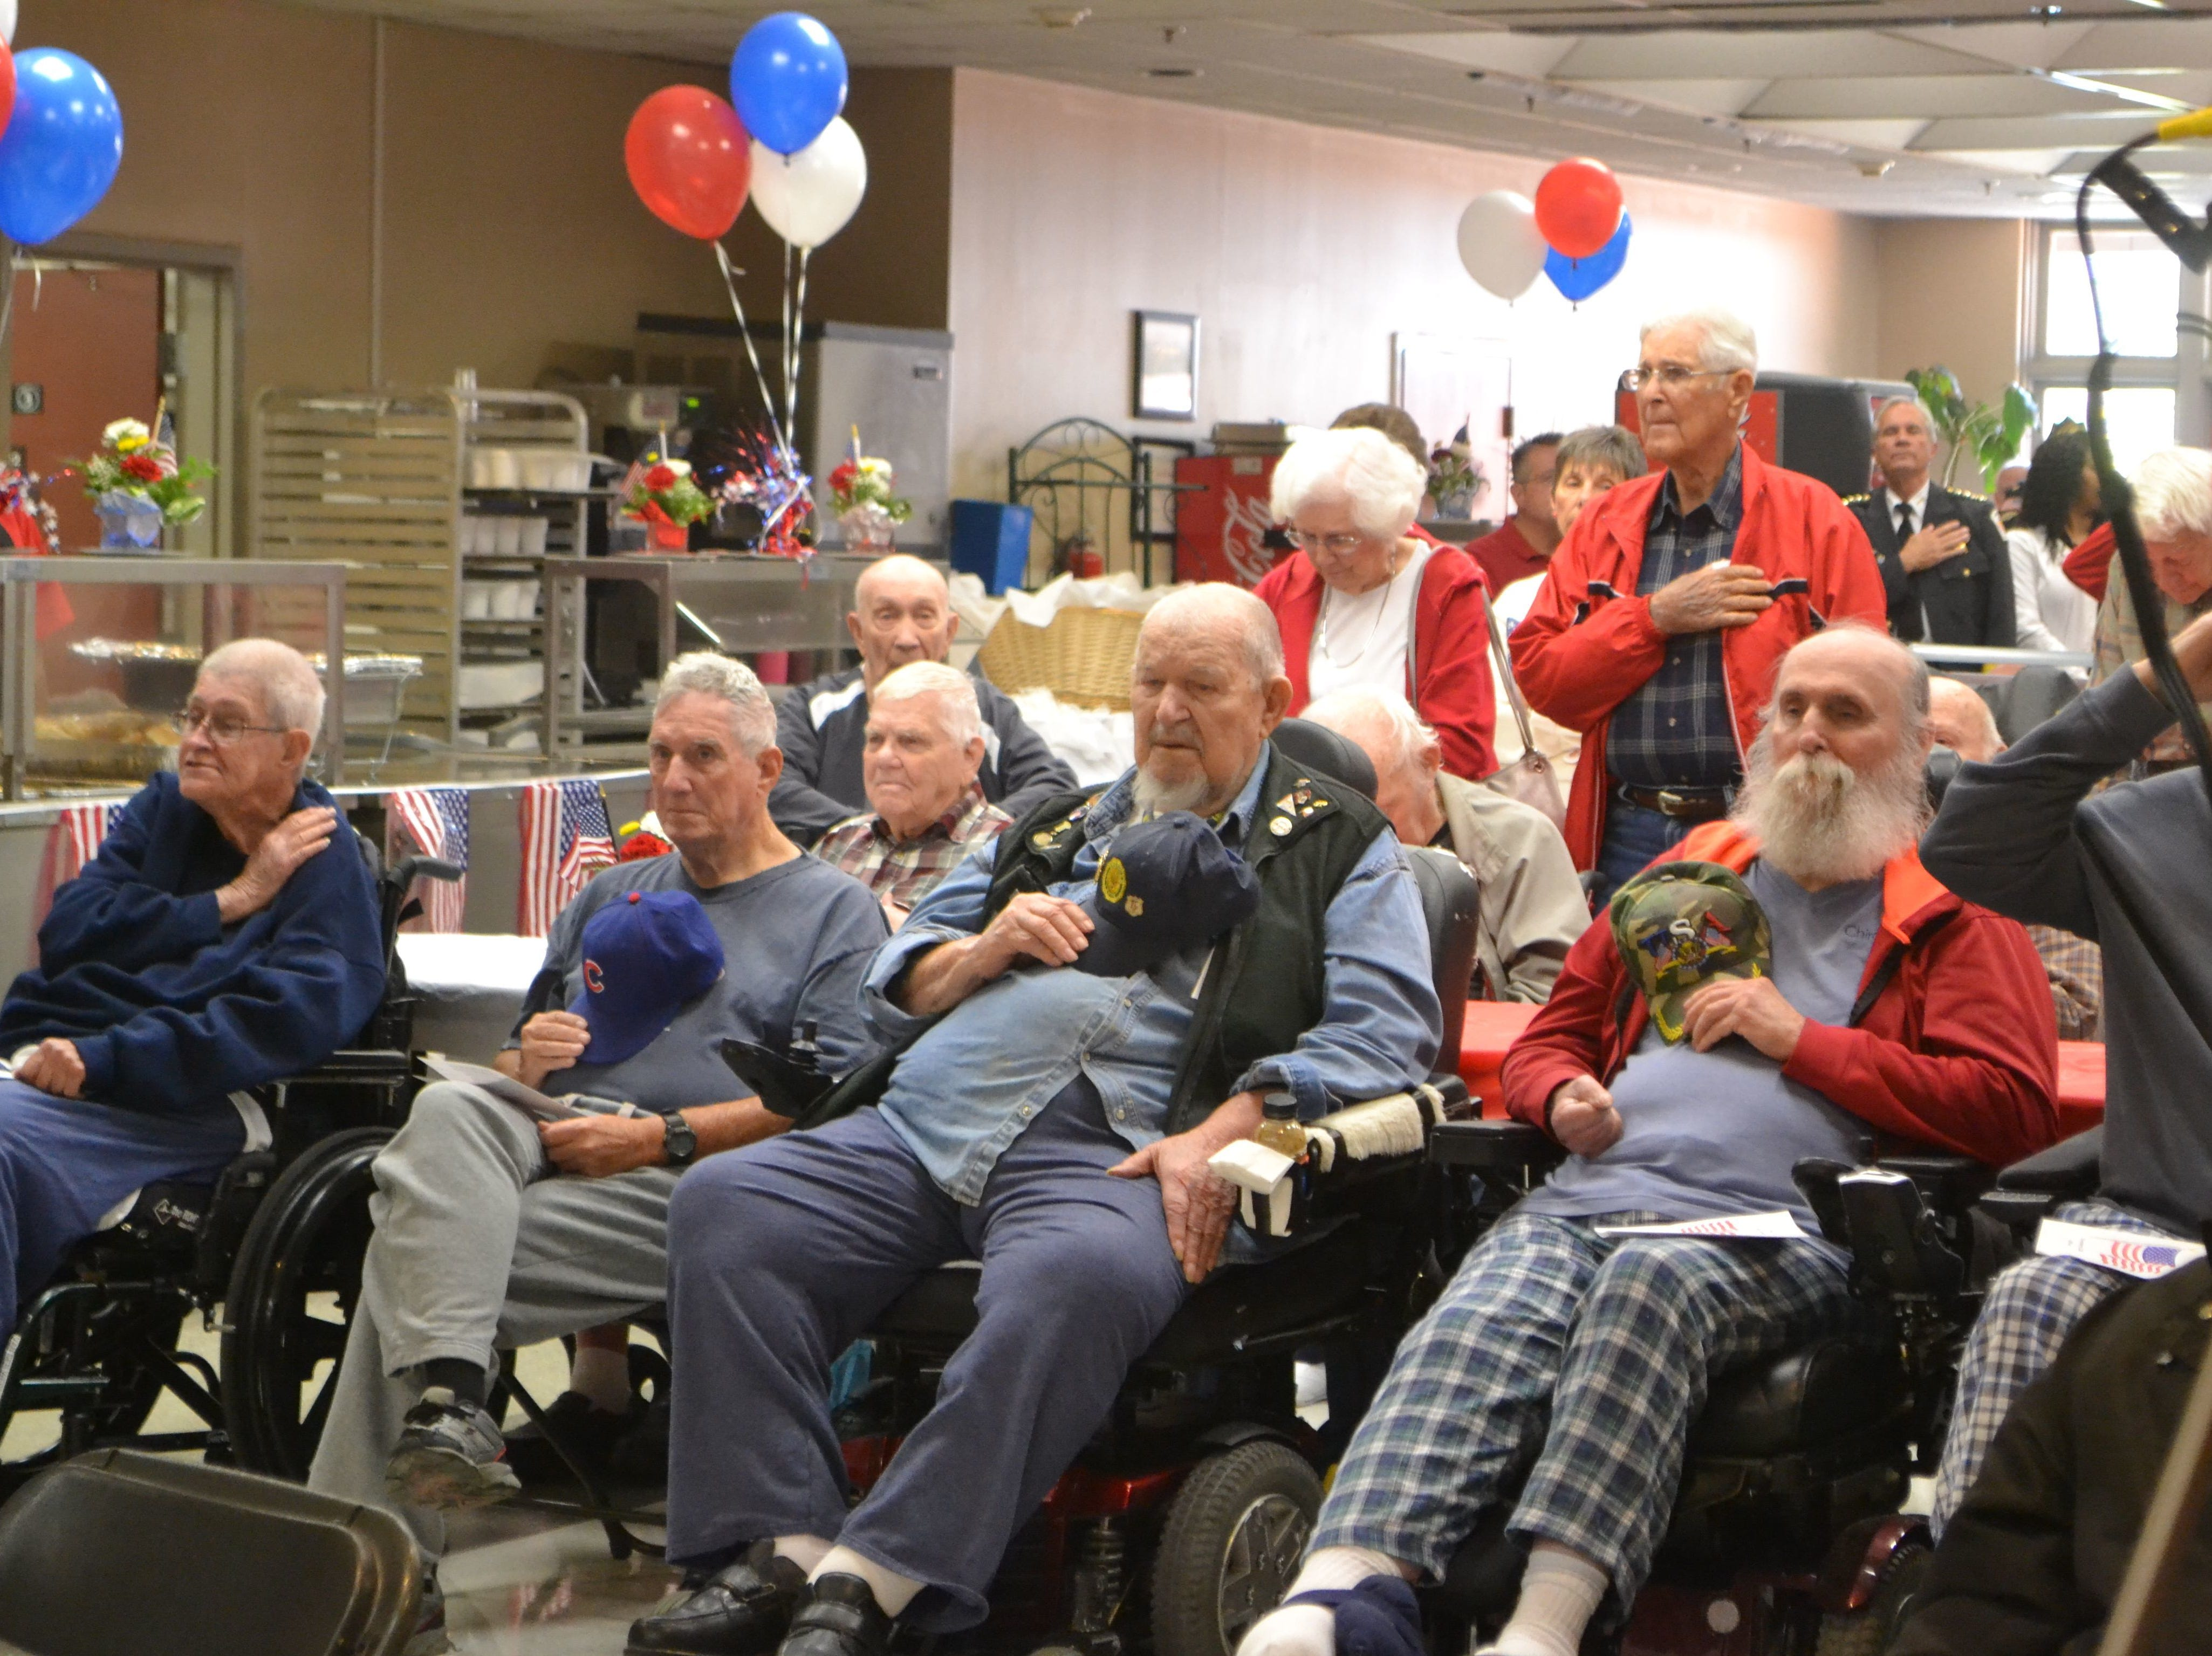 HMR receives nearly $36.5 million annually from the state to operate Victory House and the Richard M. Campbell Veterans Nursing Home, pictured, in Anderson County. Residents in the Richard M. Campbell Veterans Nursing Home salute or place their hands over their hearts as taps plays during a ceremony.